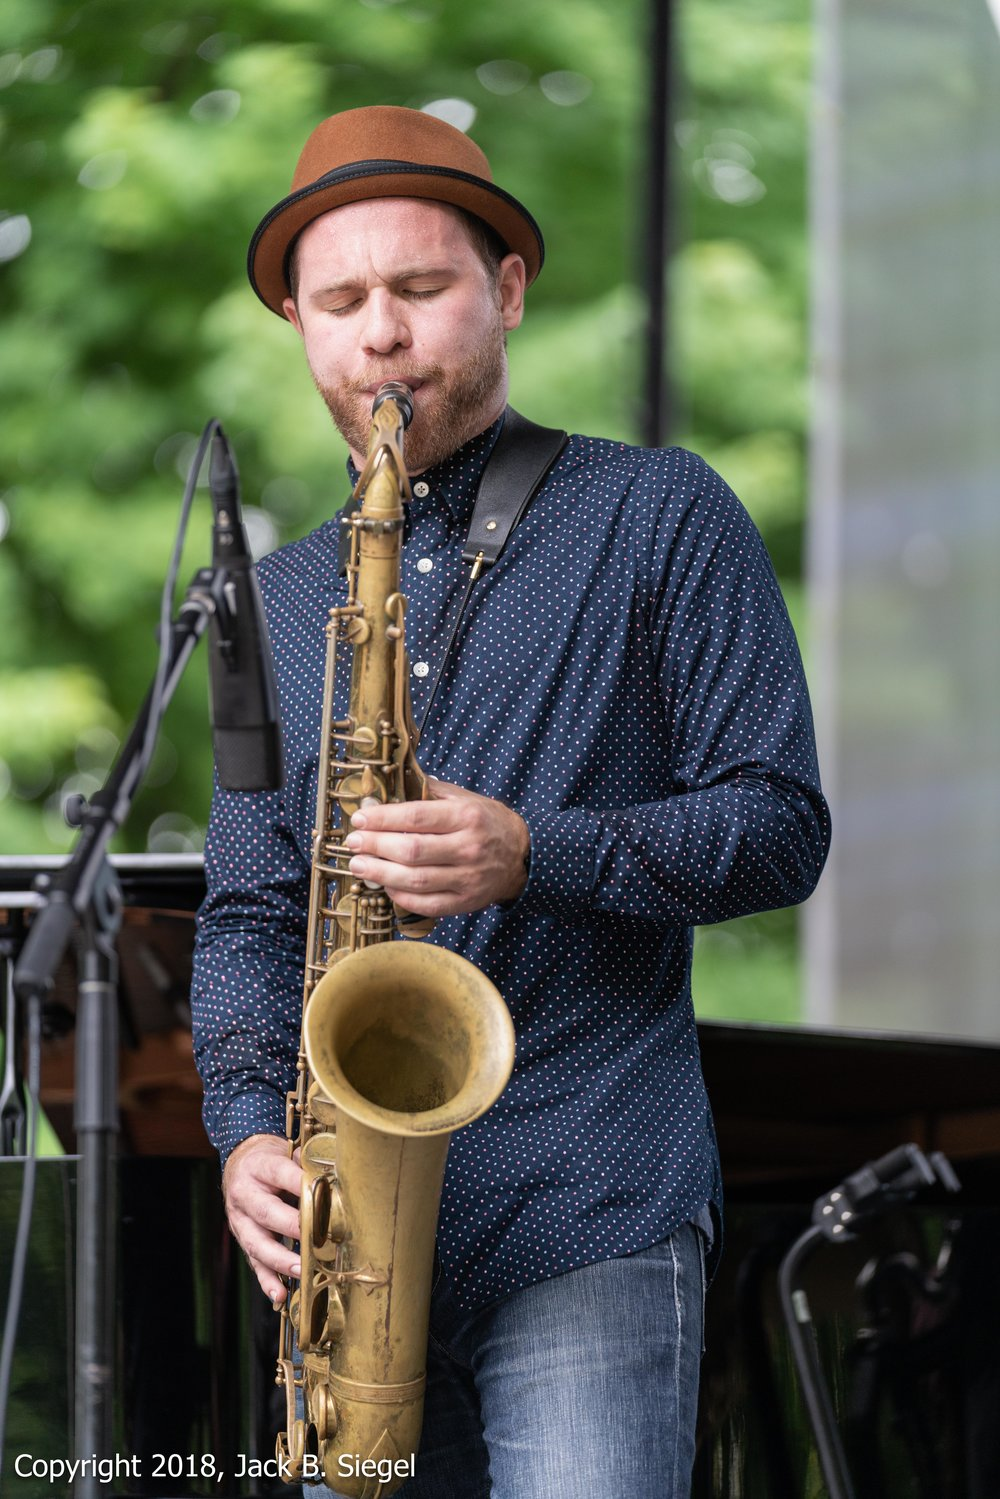 _DS16084_Copyright 2018 jpeg_Unidentified Sax Player with Dustin Laurenzi's Natural Language.jpg